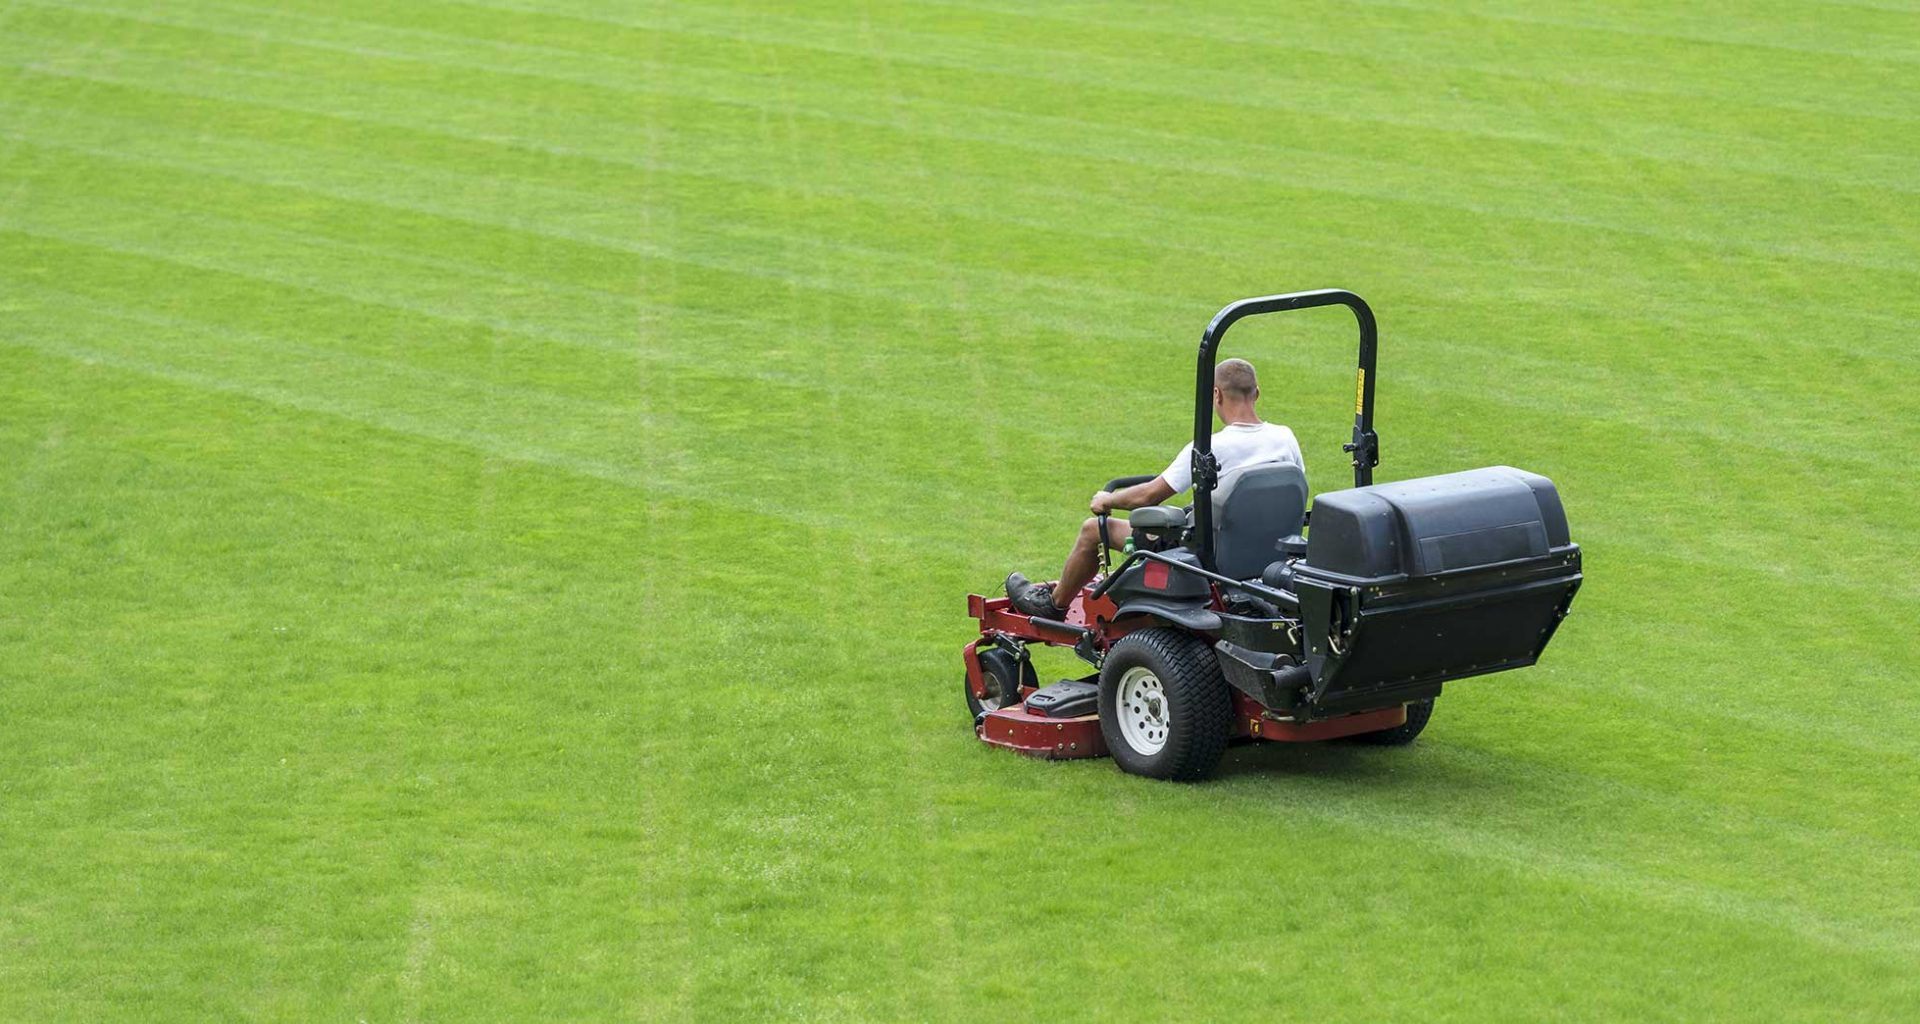 Striping a lawn with a zero turn mower